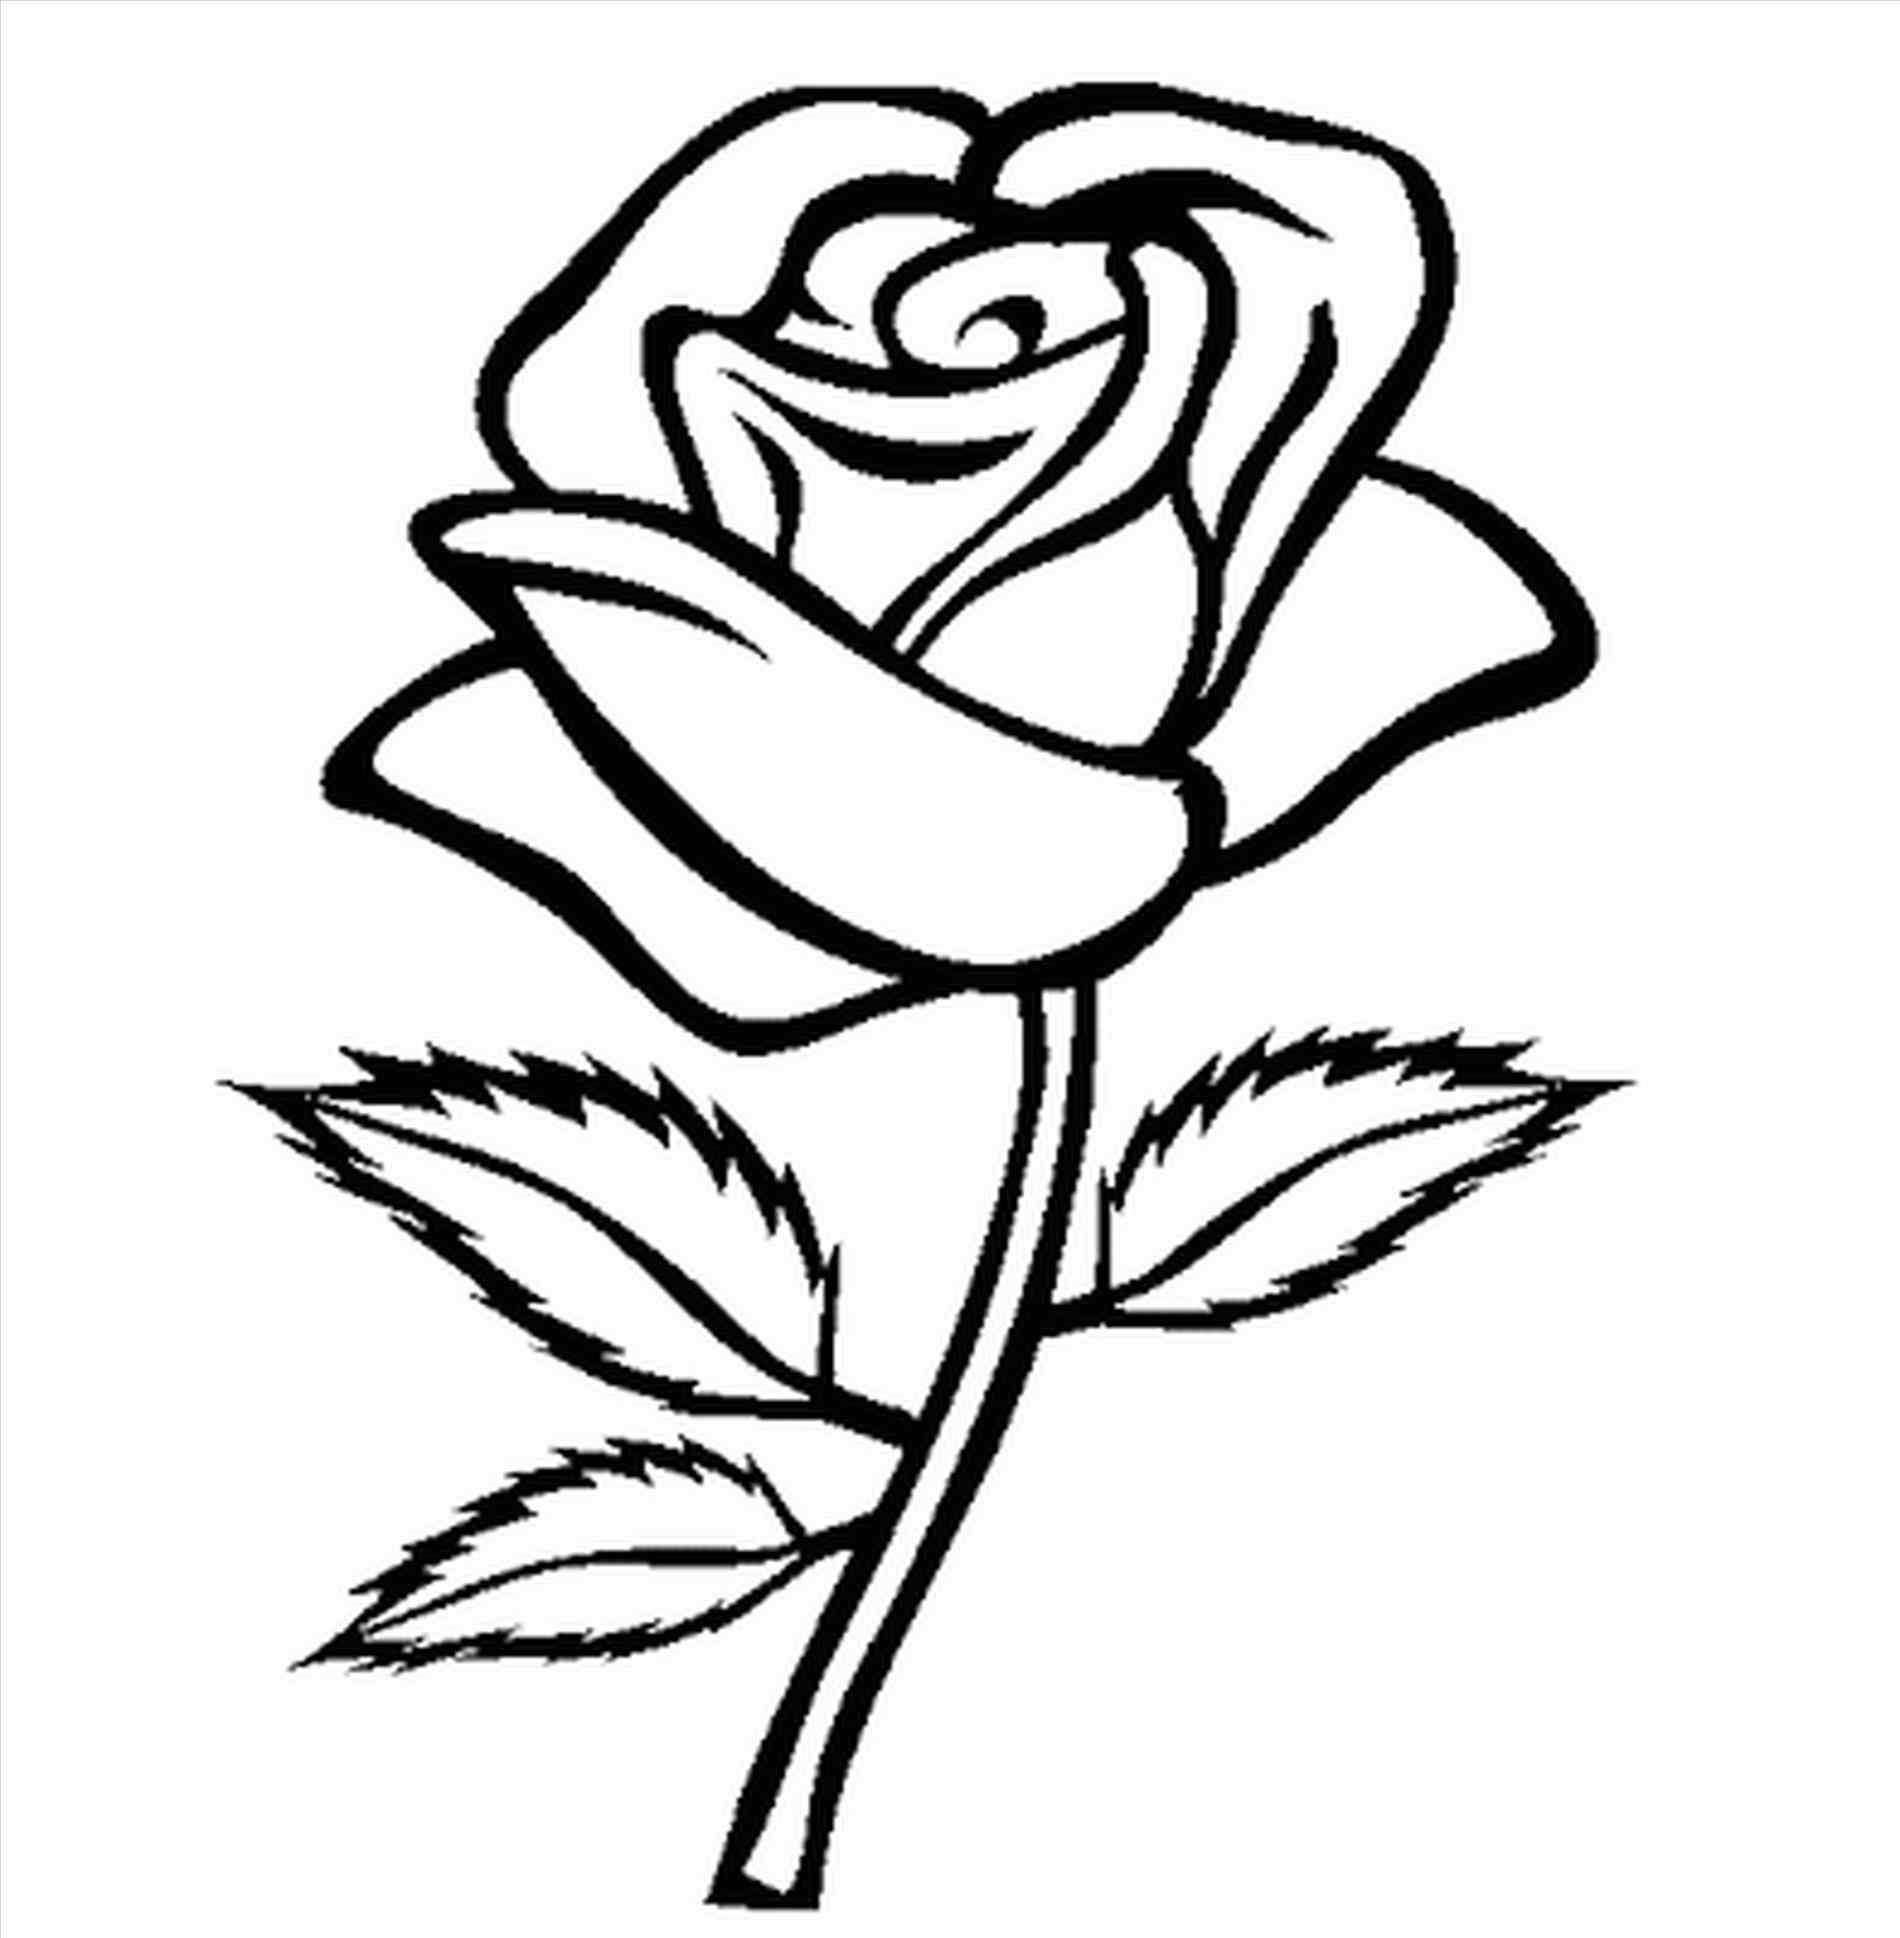 cute flower coloring pages cute coloring pages of flowers at getdrawings free download cute flower pages coloring